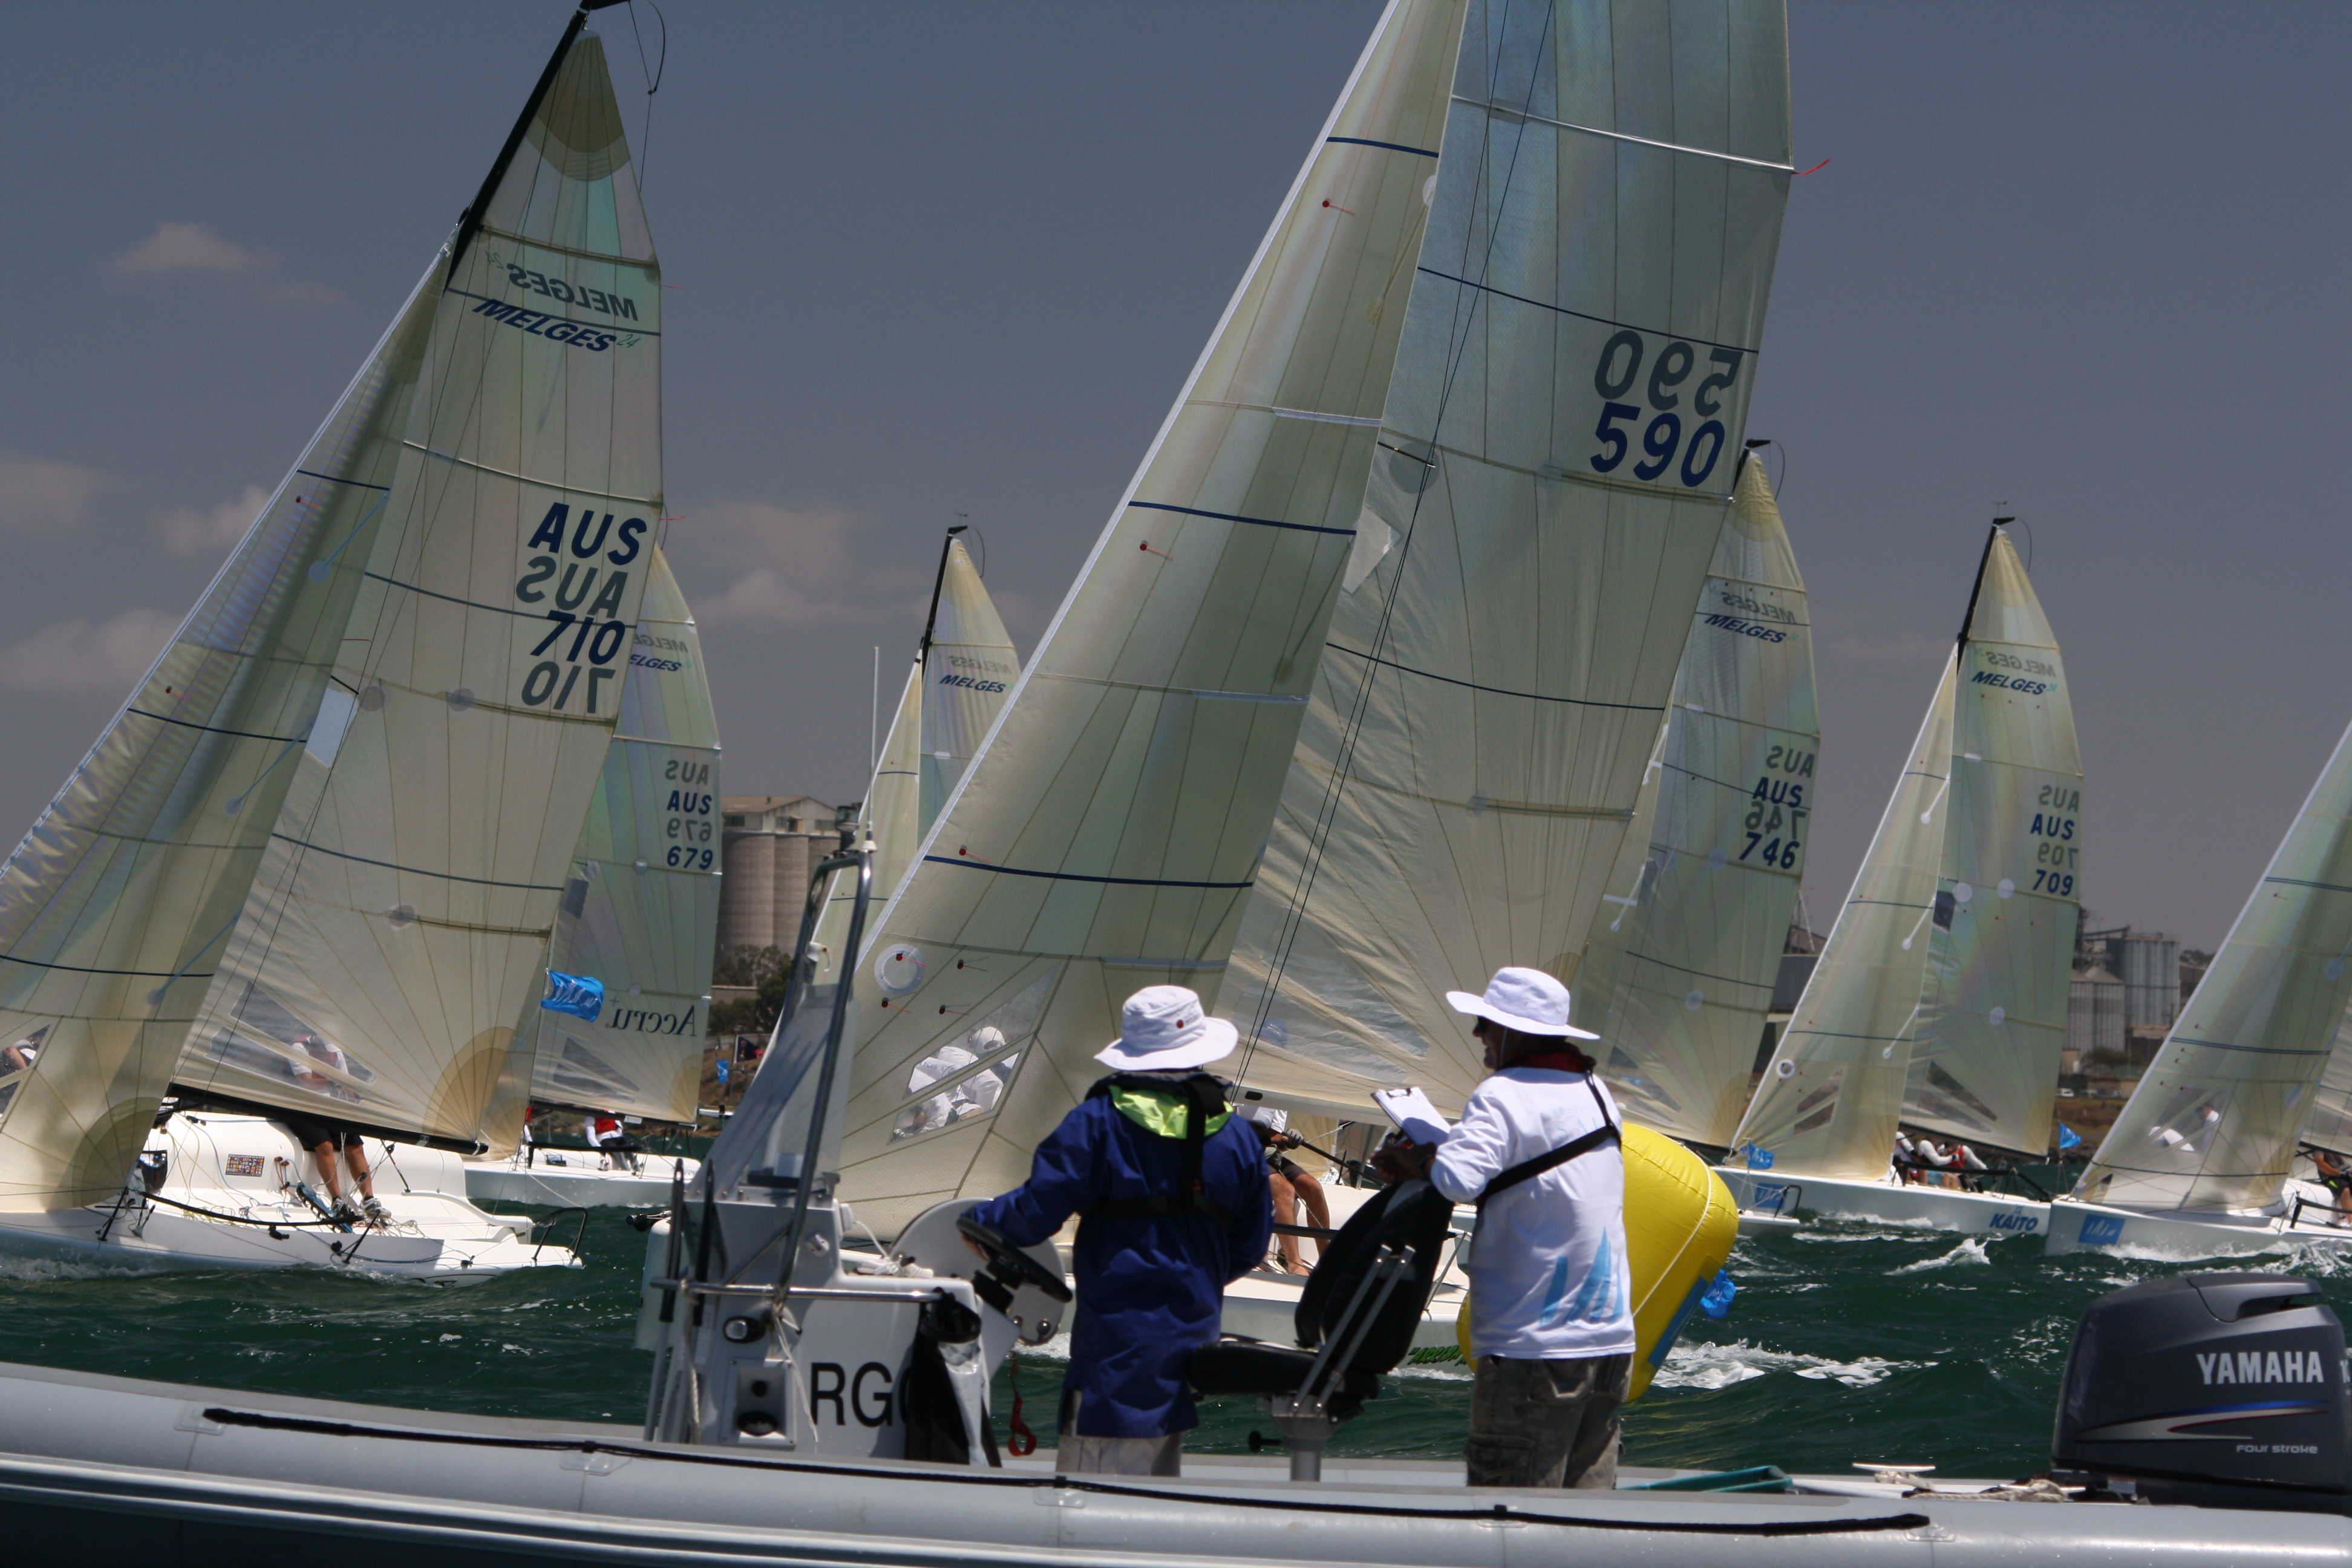 Get set of the Melges 24 Worlds, GEELONG 2014